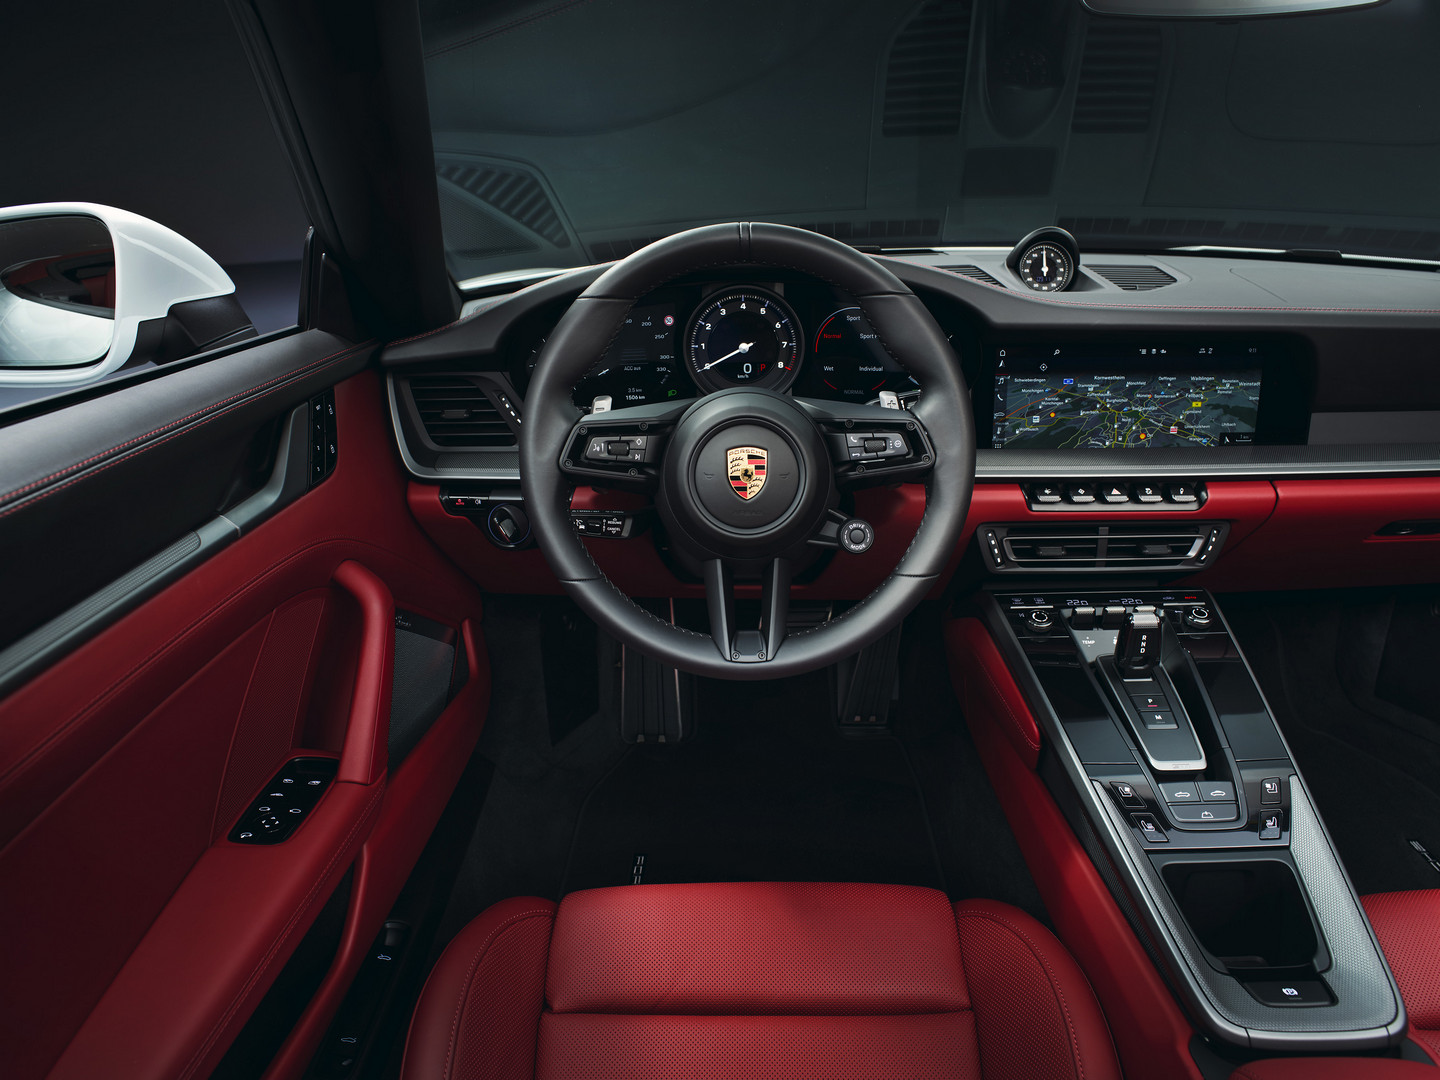 2019 Porsche 911 Carrera Interior